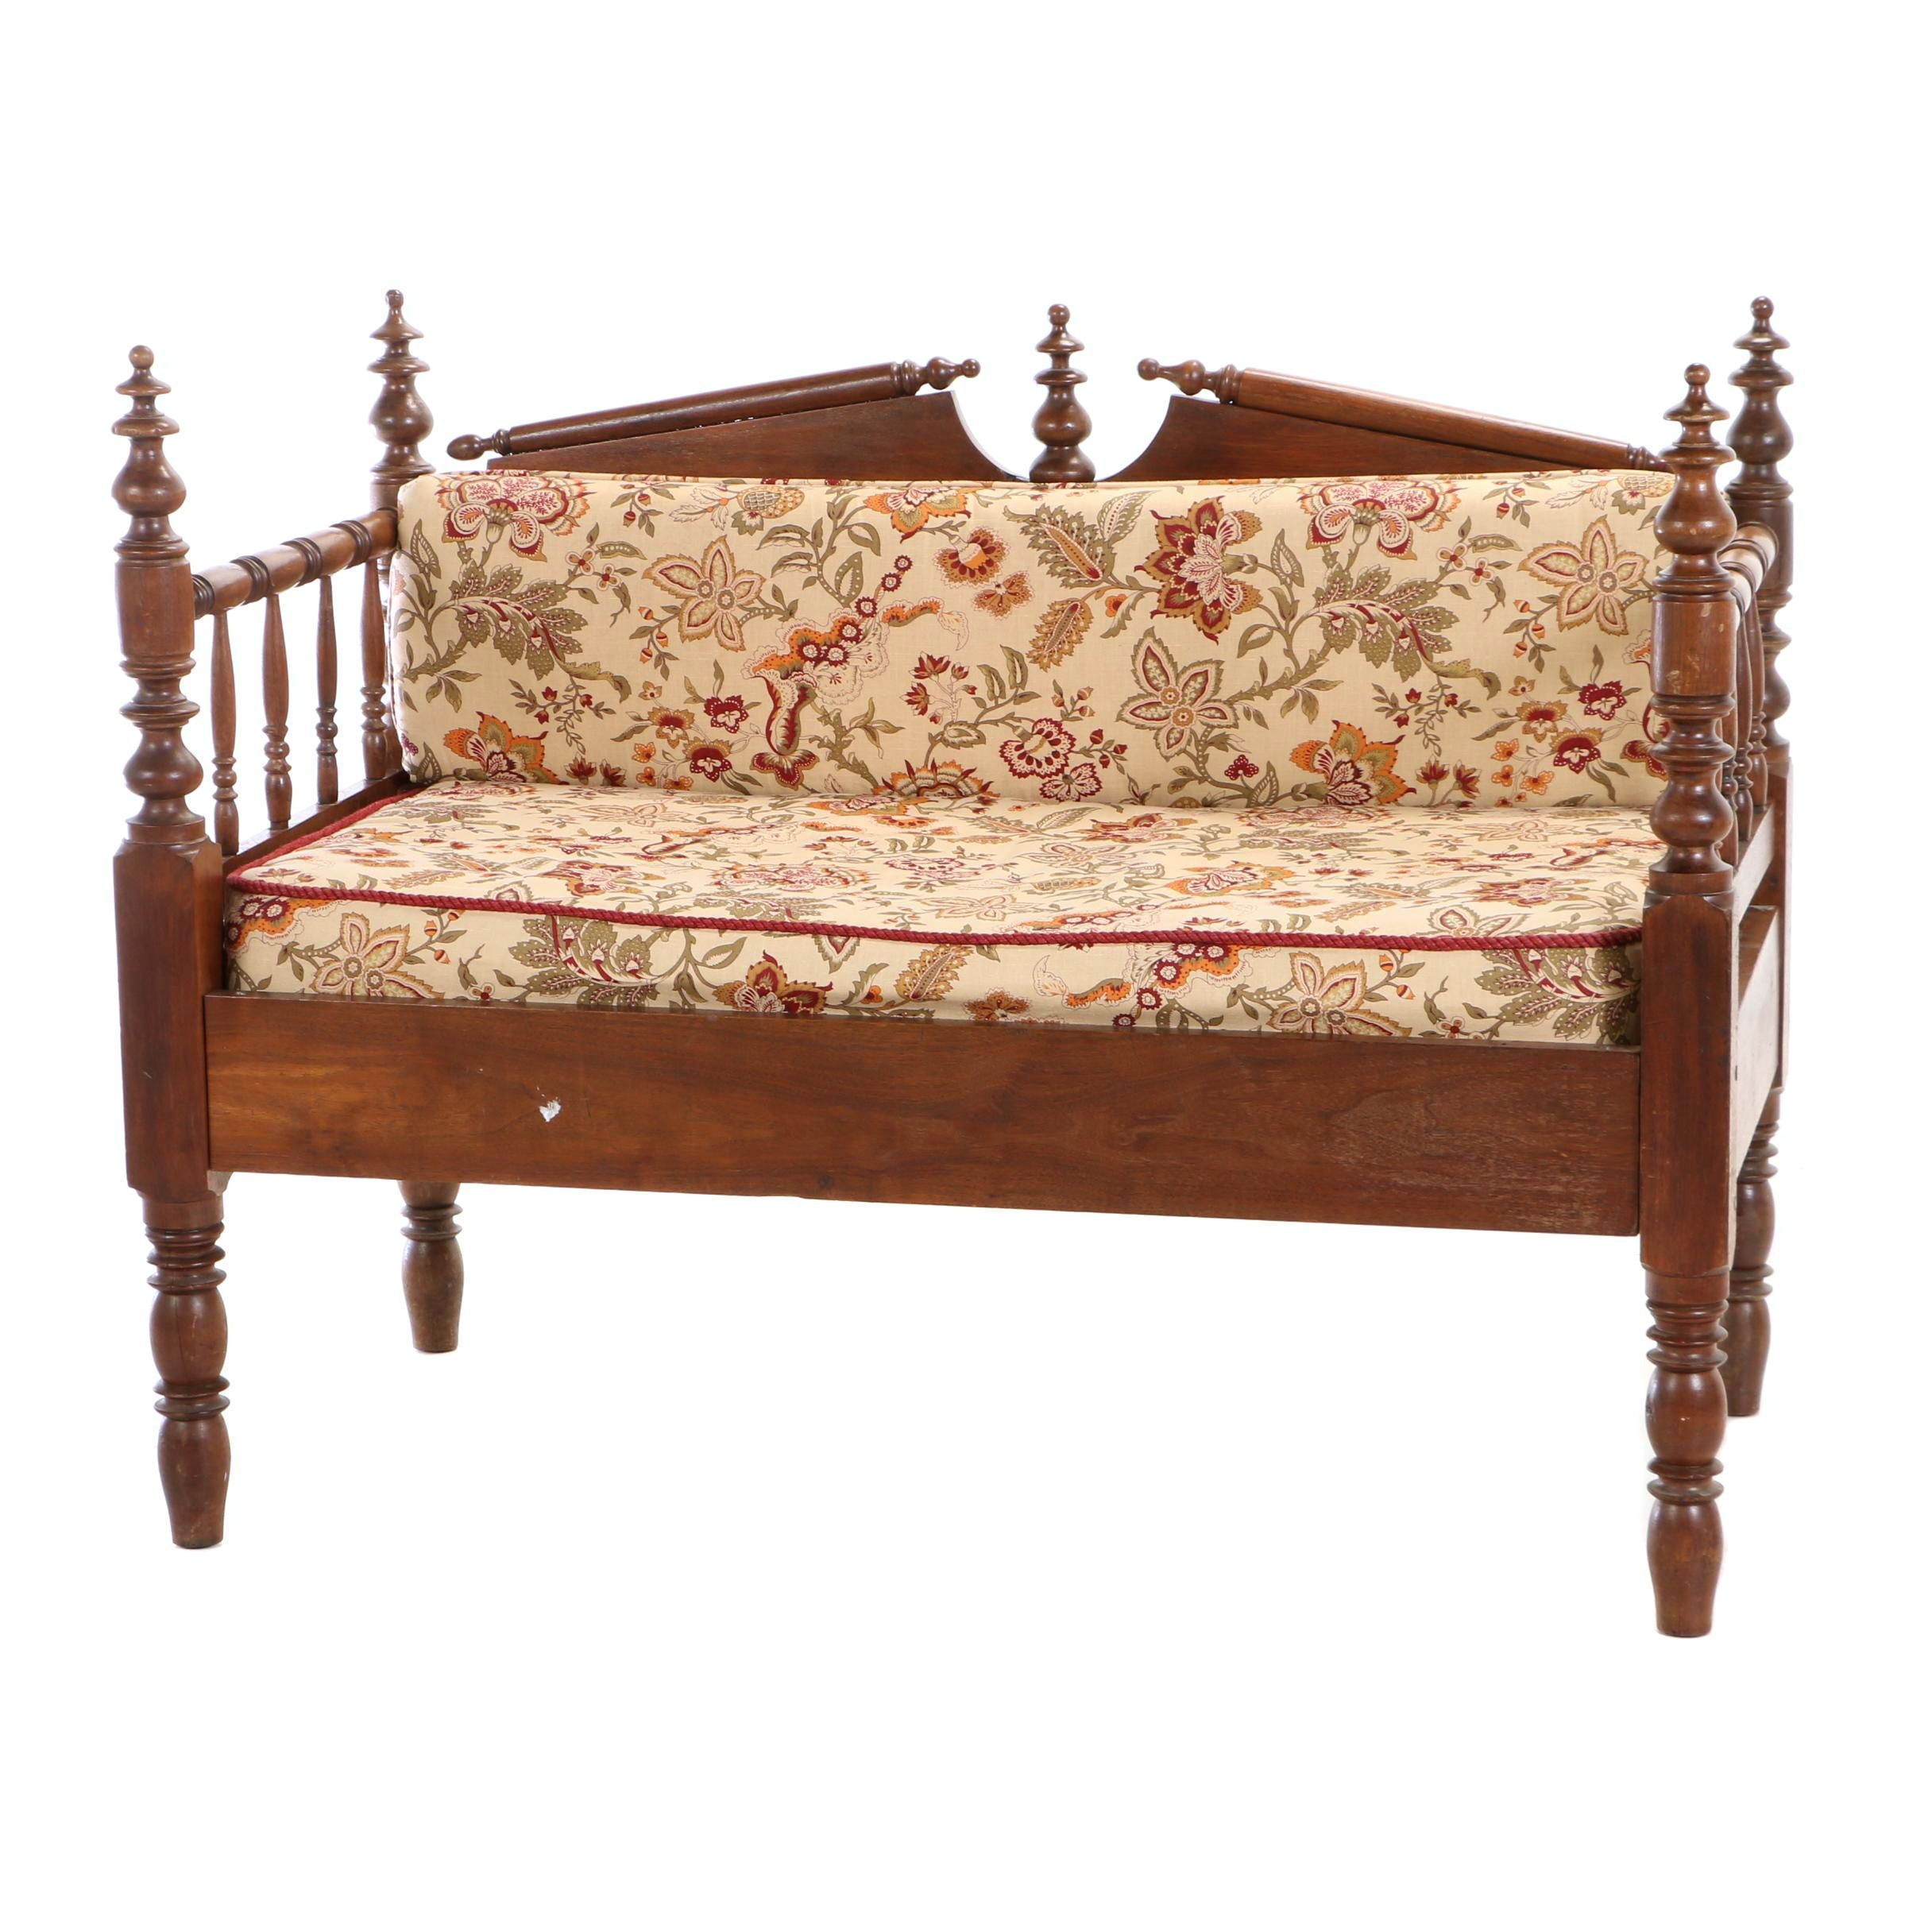 Custom-Made Walnut Settee from Victorian Spool Bed, Late 19th Century and Later